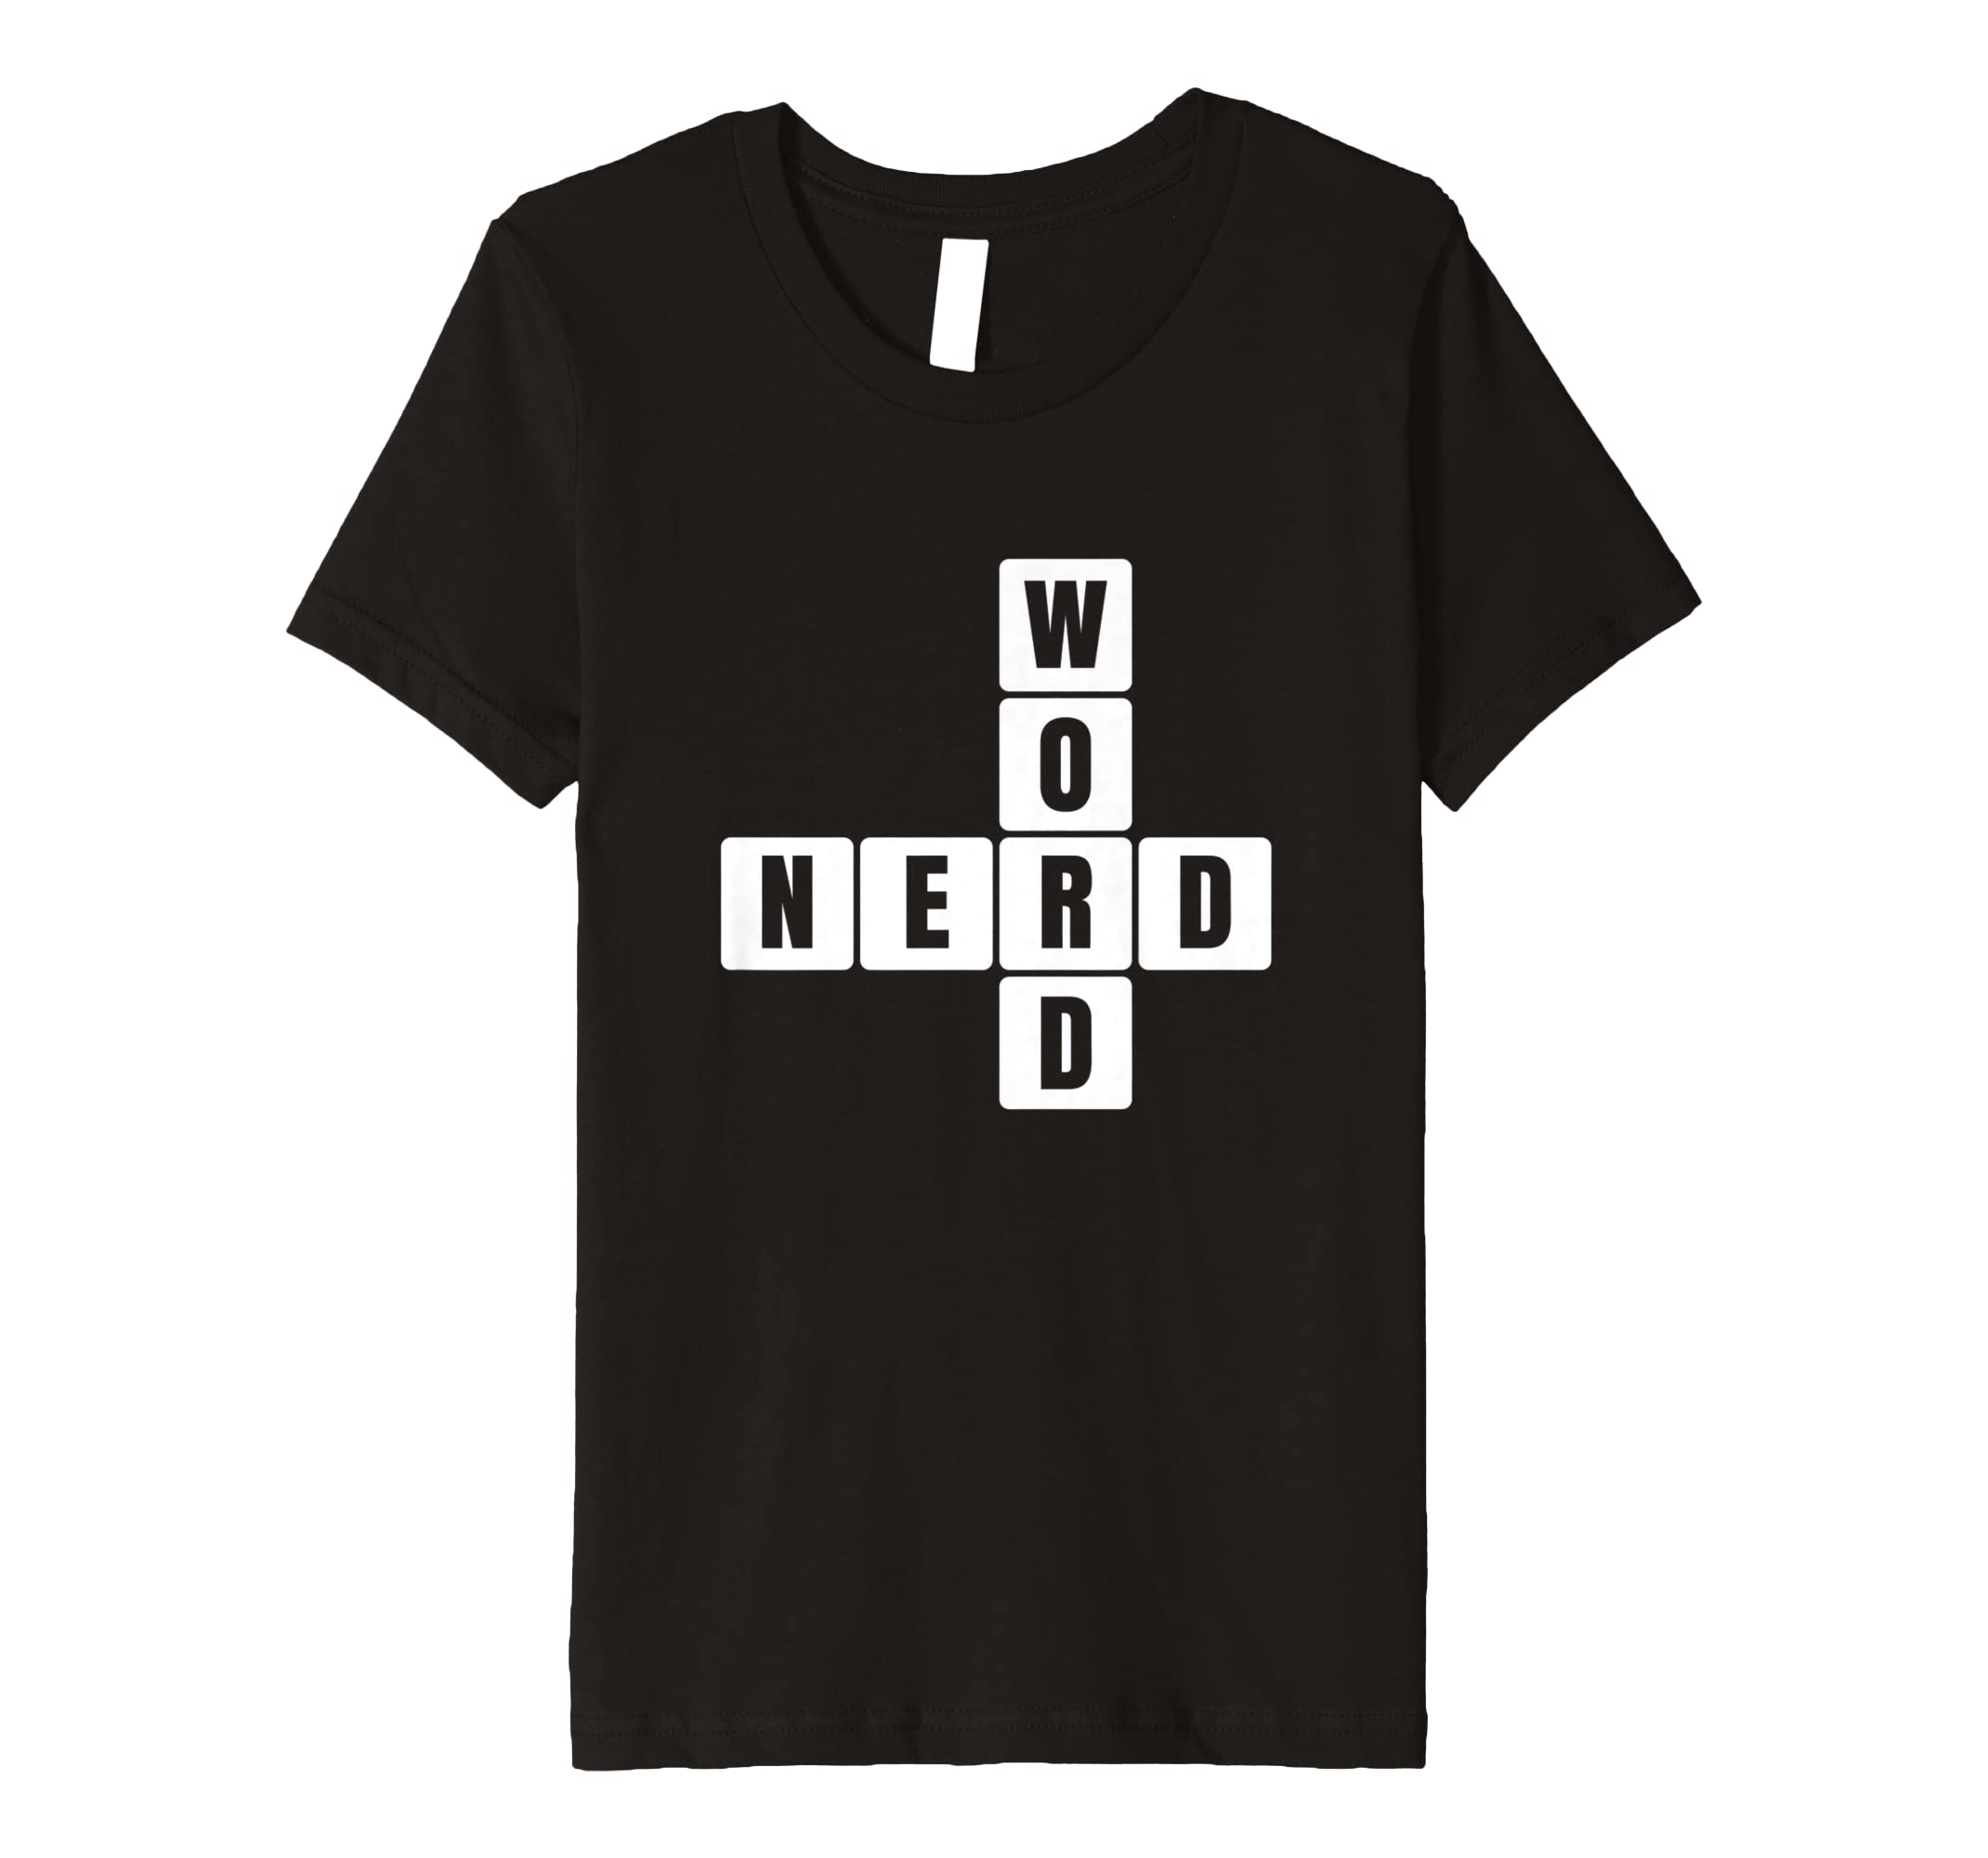 84cb65a3a Amazon.com: Word Game, Word Puzzle Tshirt: Word Nerd: Clothing